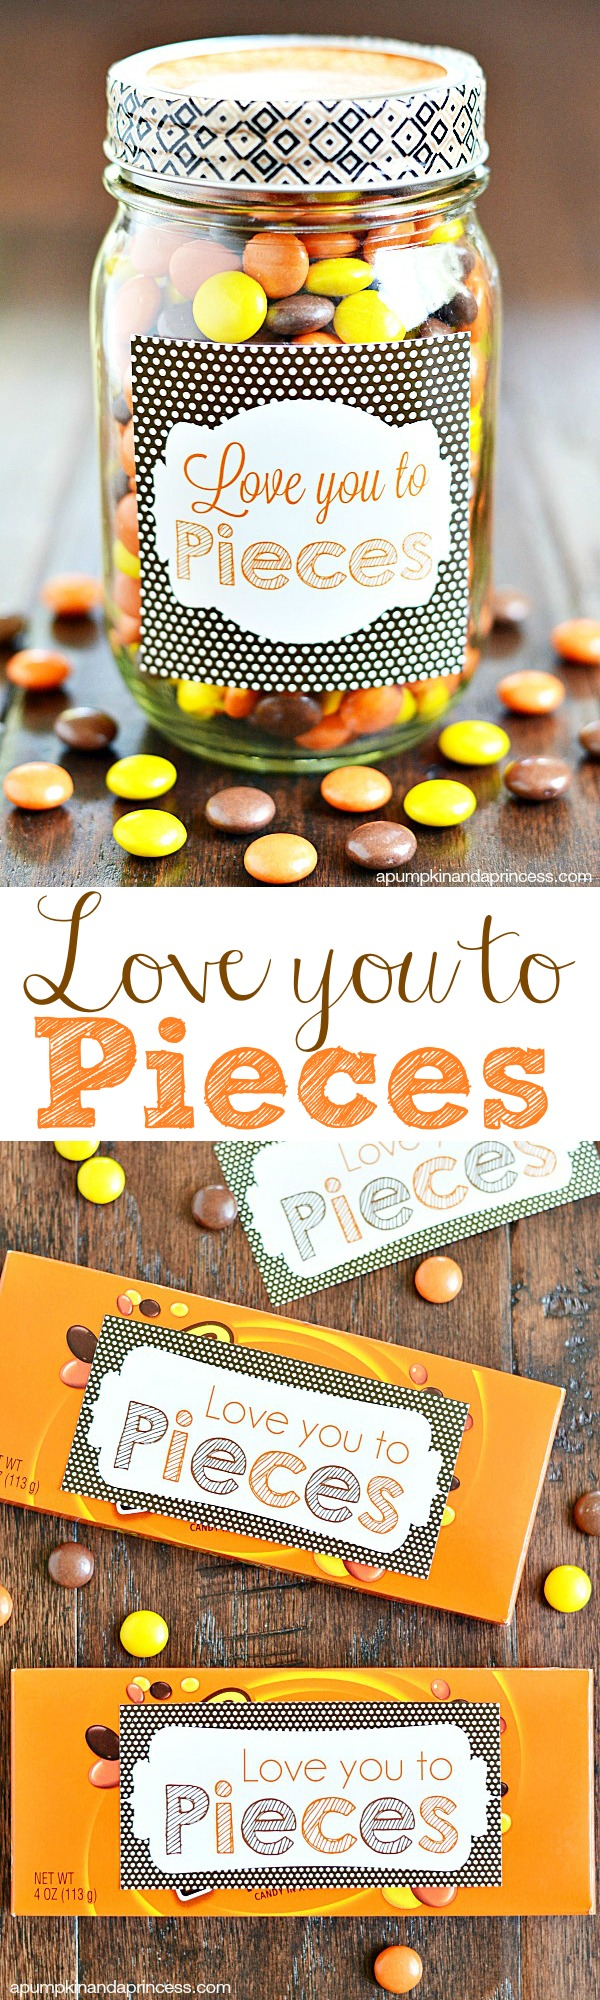 7 Images of We Love You To Pieces Printable